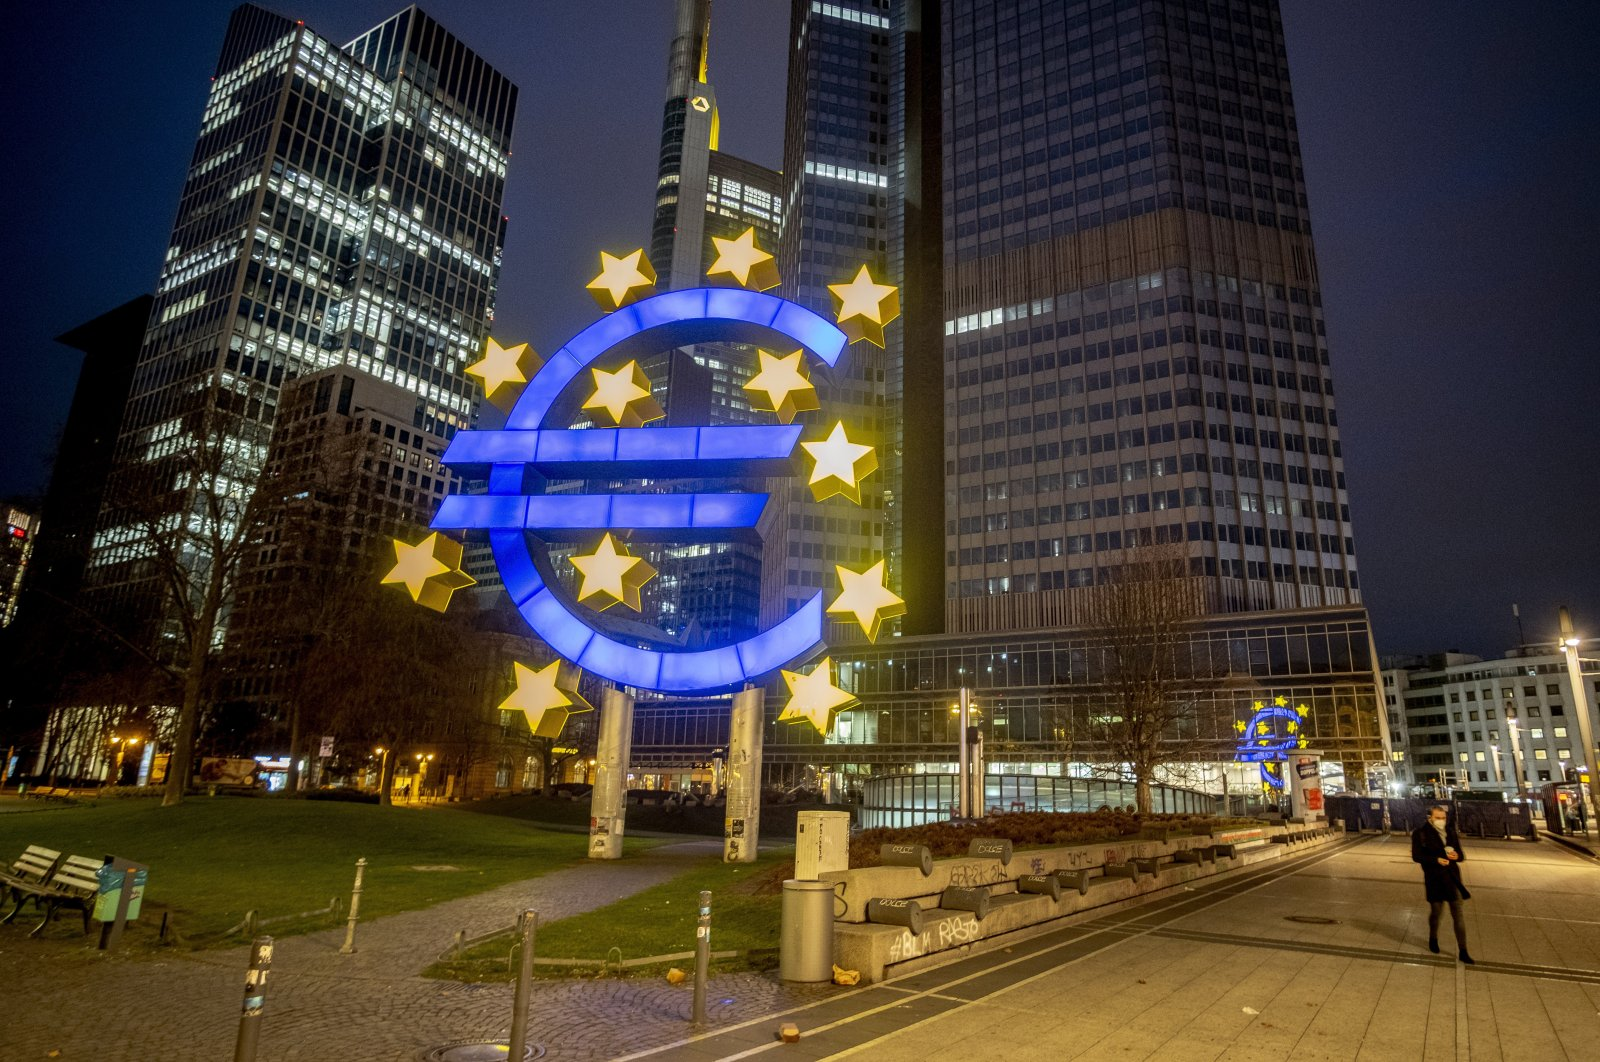 In this file photo, a man walks past the Euro sculpture in Frankfurt, Germany, March 11, 2021. (AP Photo)